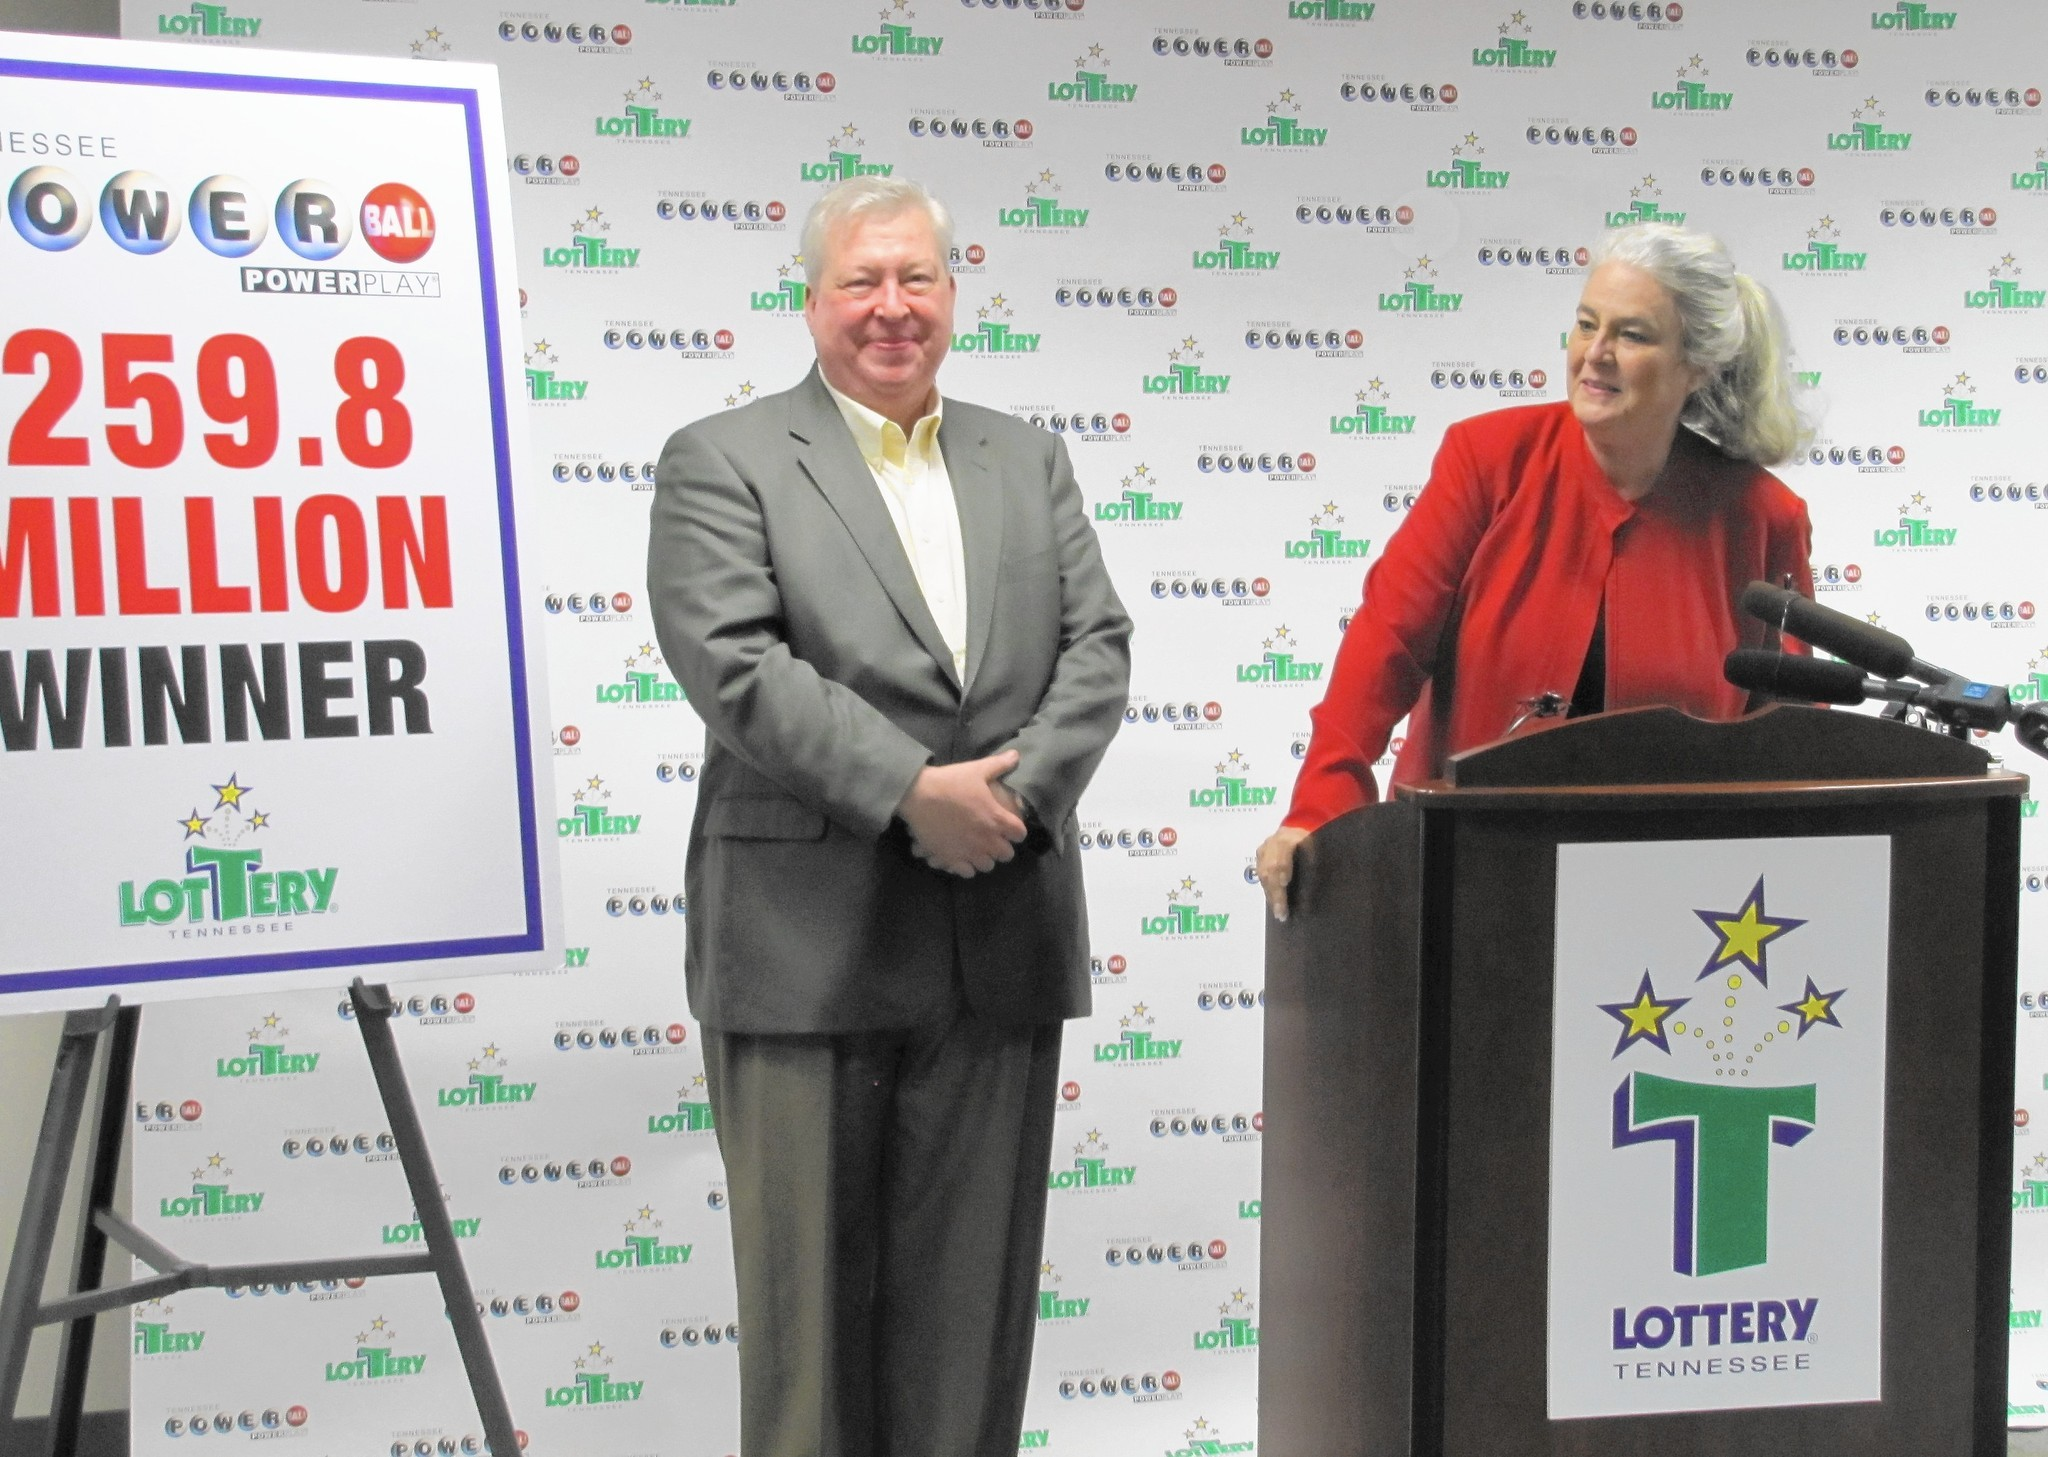 Powerball jackpot winner pays for Steppenwolf and Goodman plays